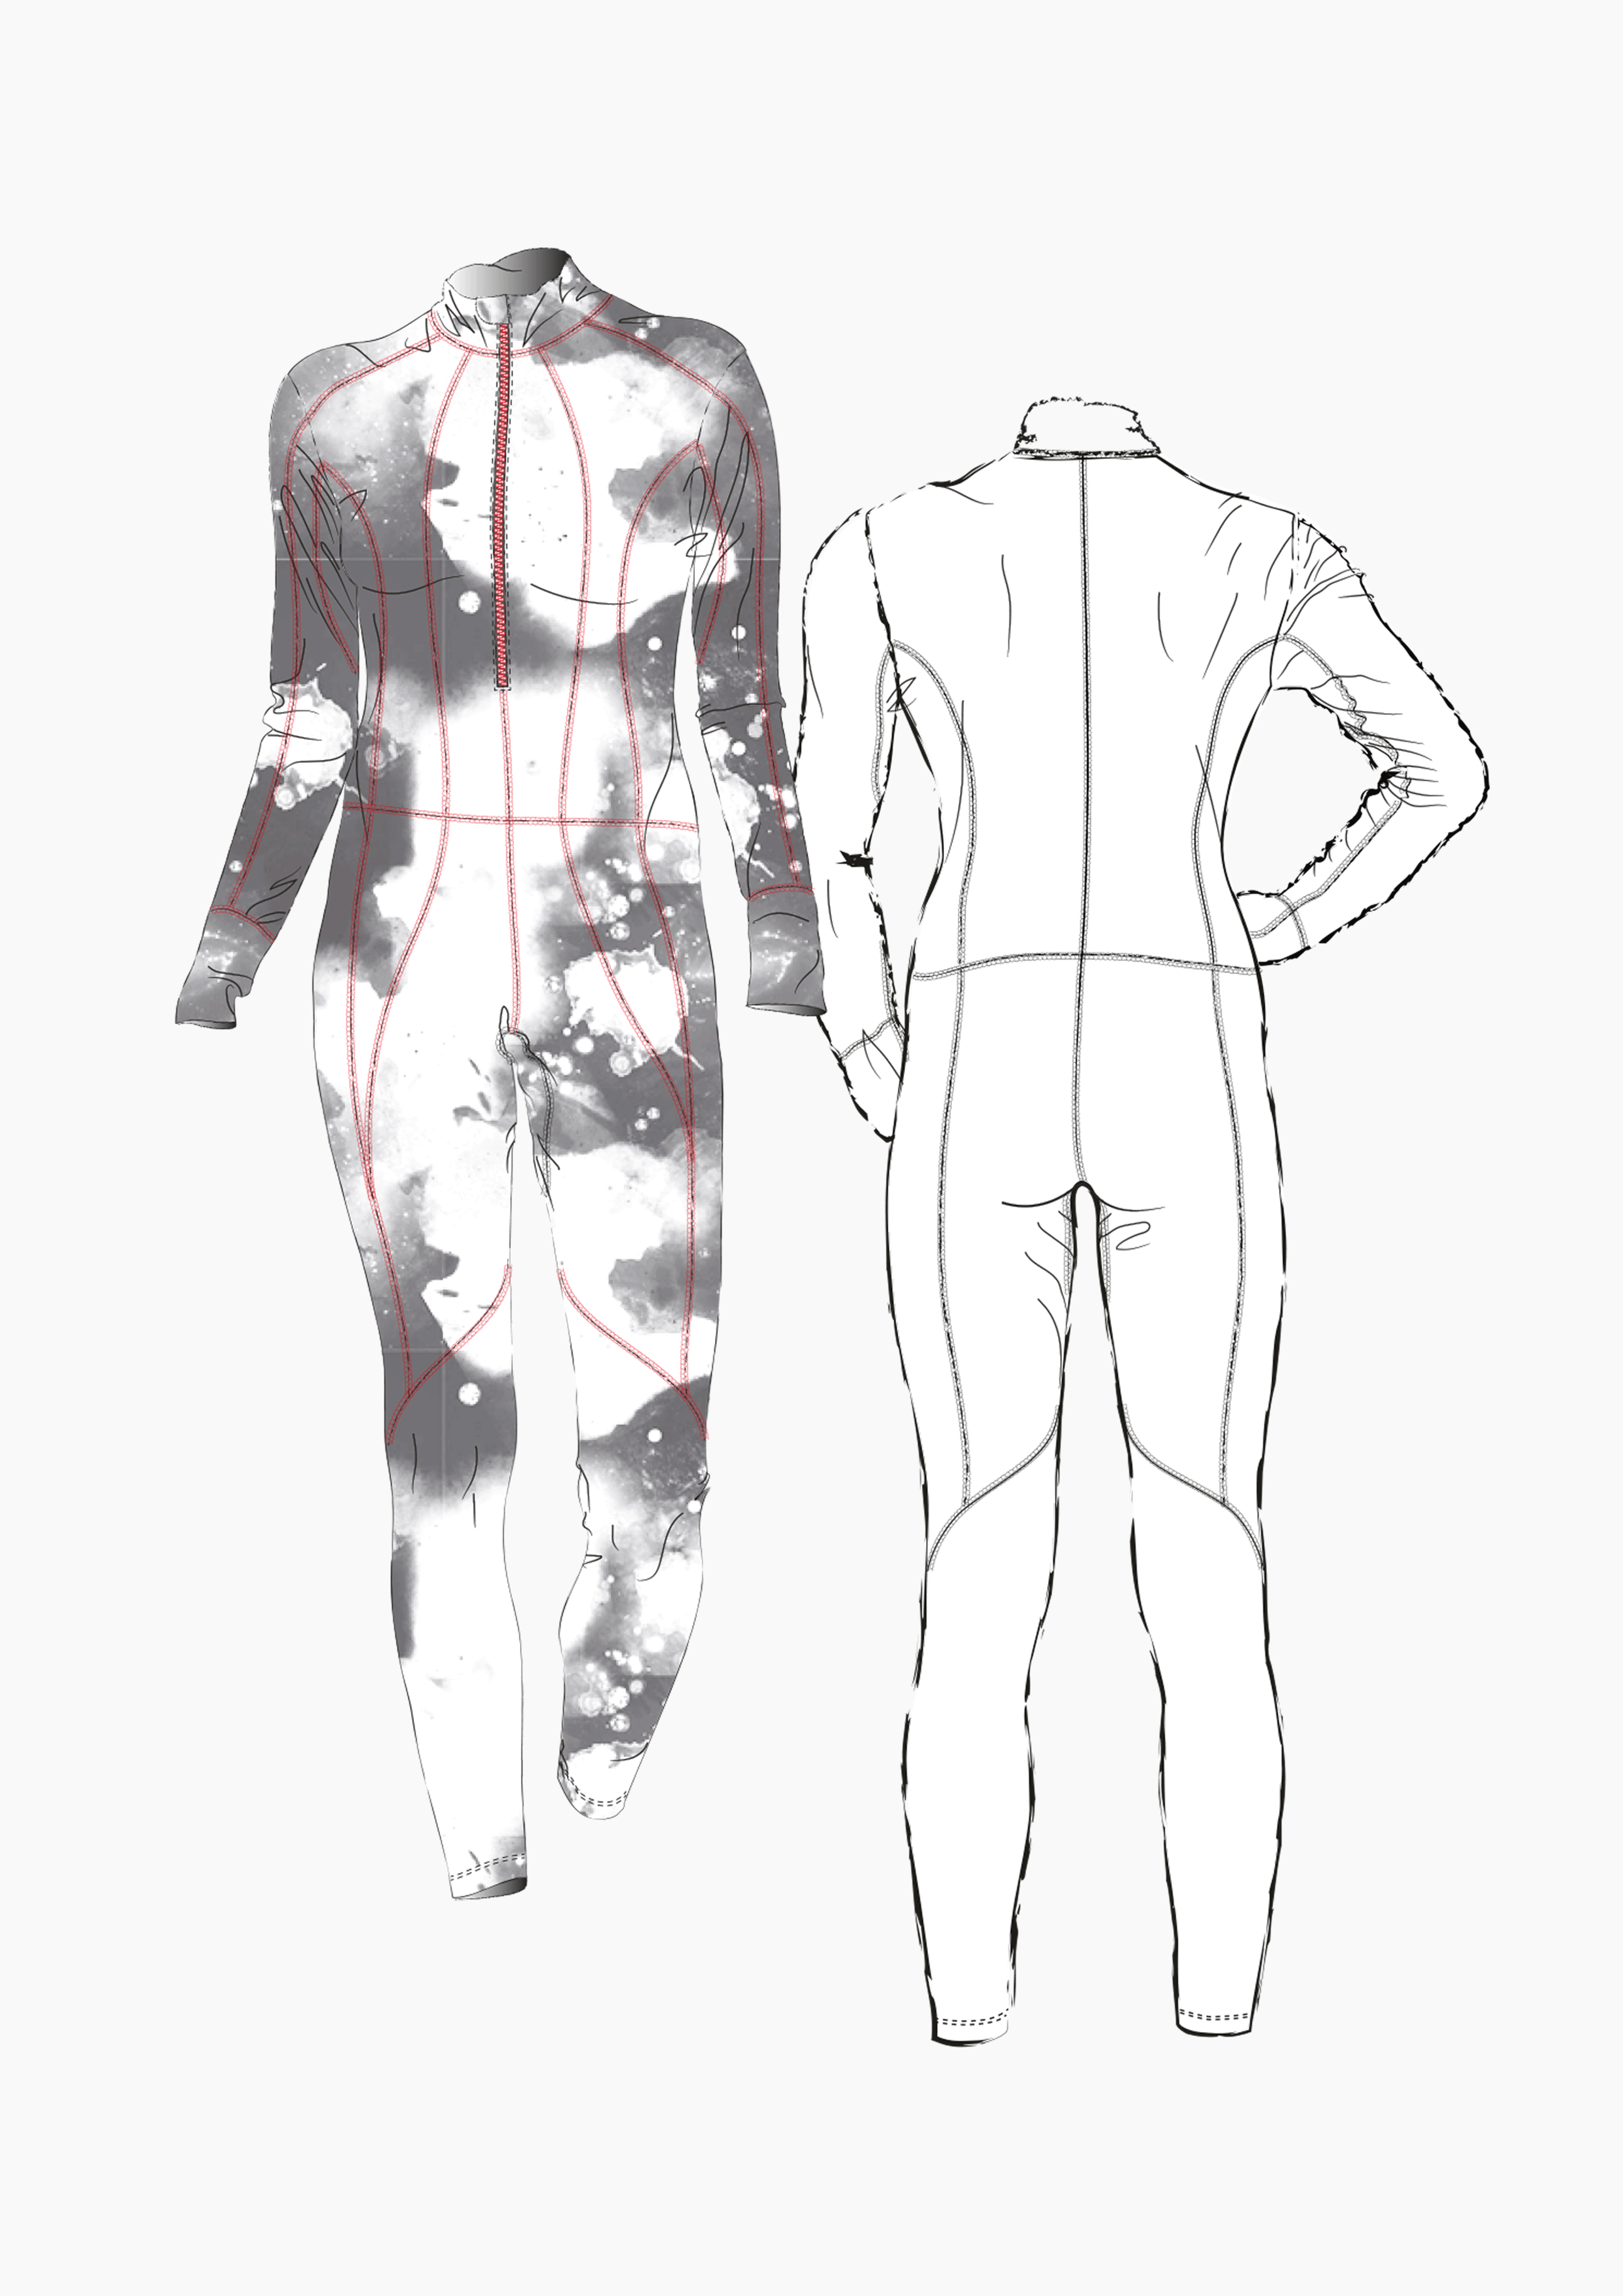 Product: Pattern Making Cross Country Skiing Suit